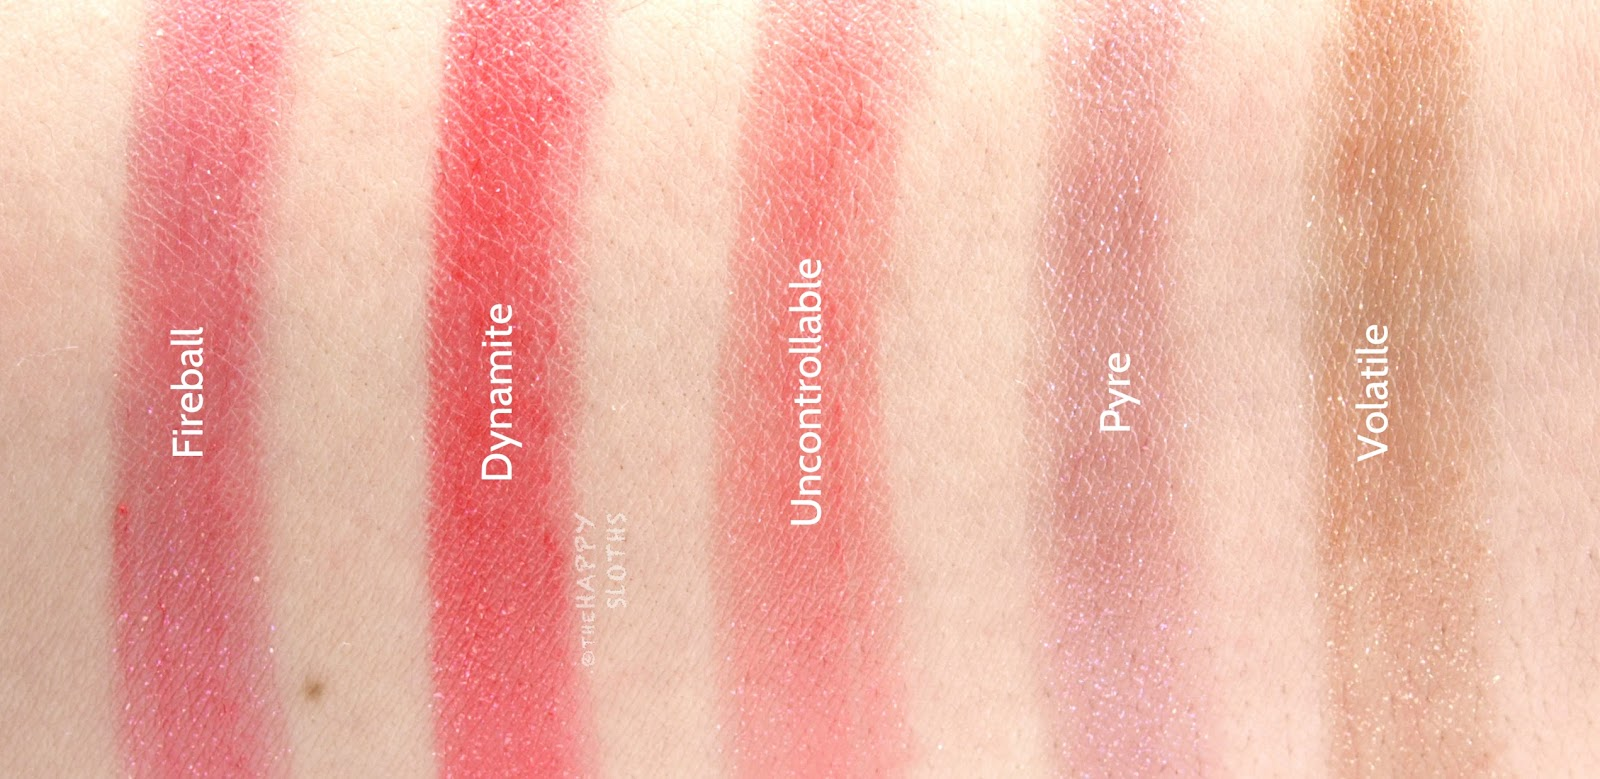 Buxom Shimmer Shock Lip Stick: Review and Swatches